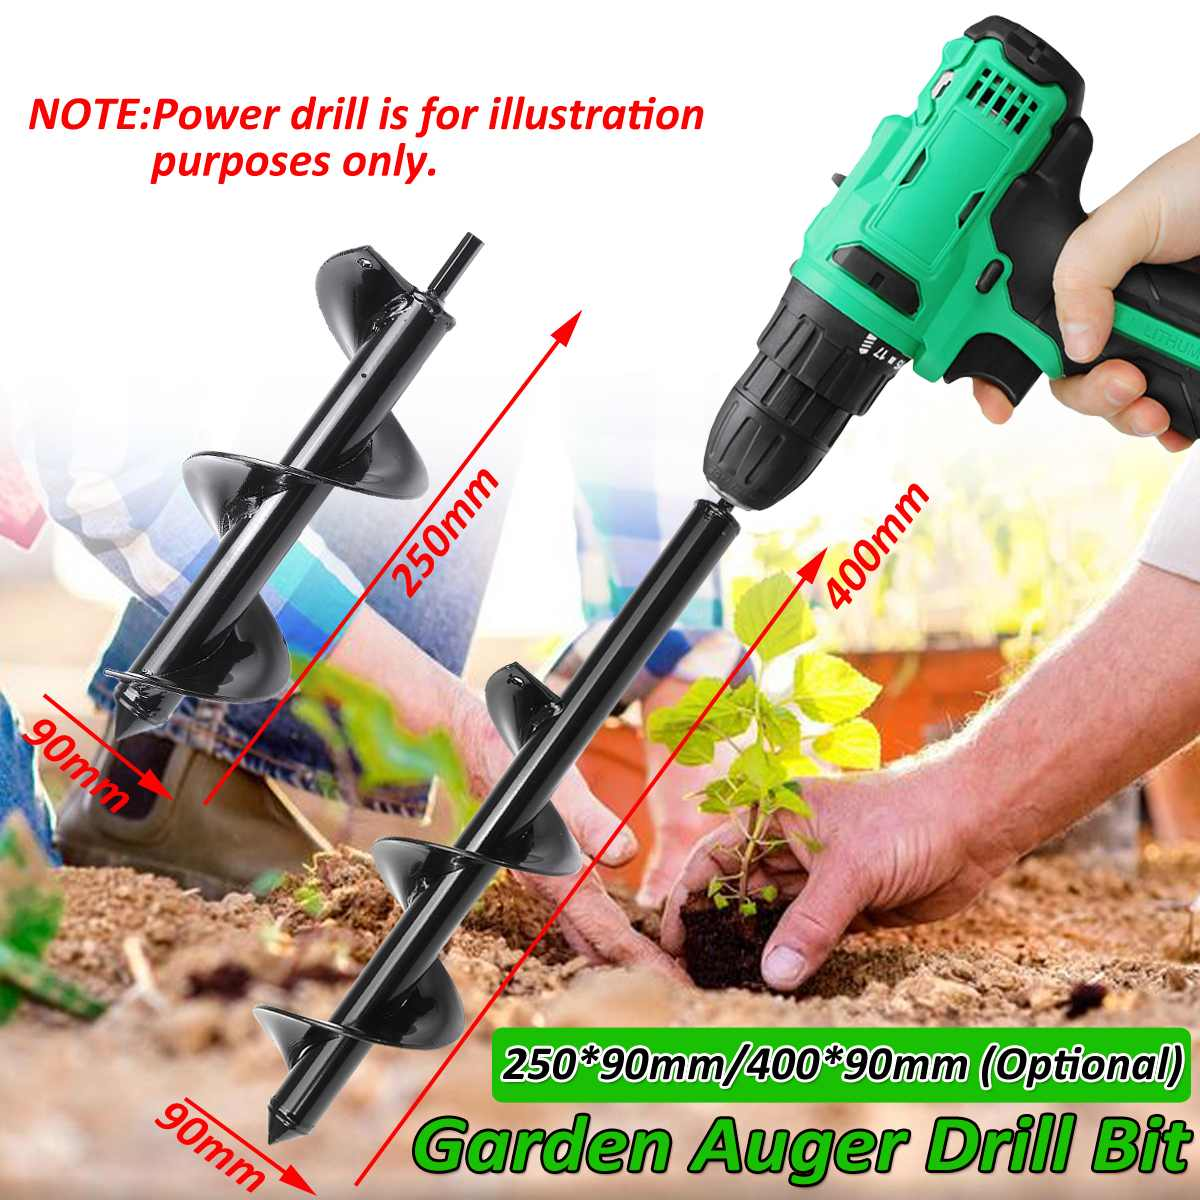 90mm Earth Auger Hole Digger Tool Garden Planting Machine Drill Bit Fence Borer Post Post Hole Digger Garden Auger Yard Tool